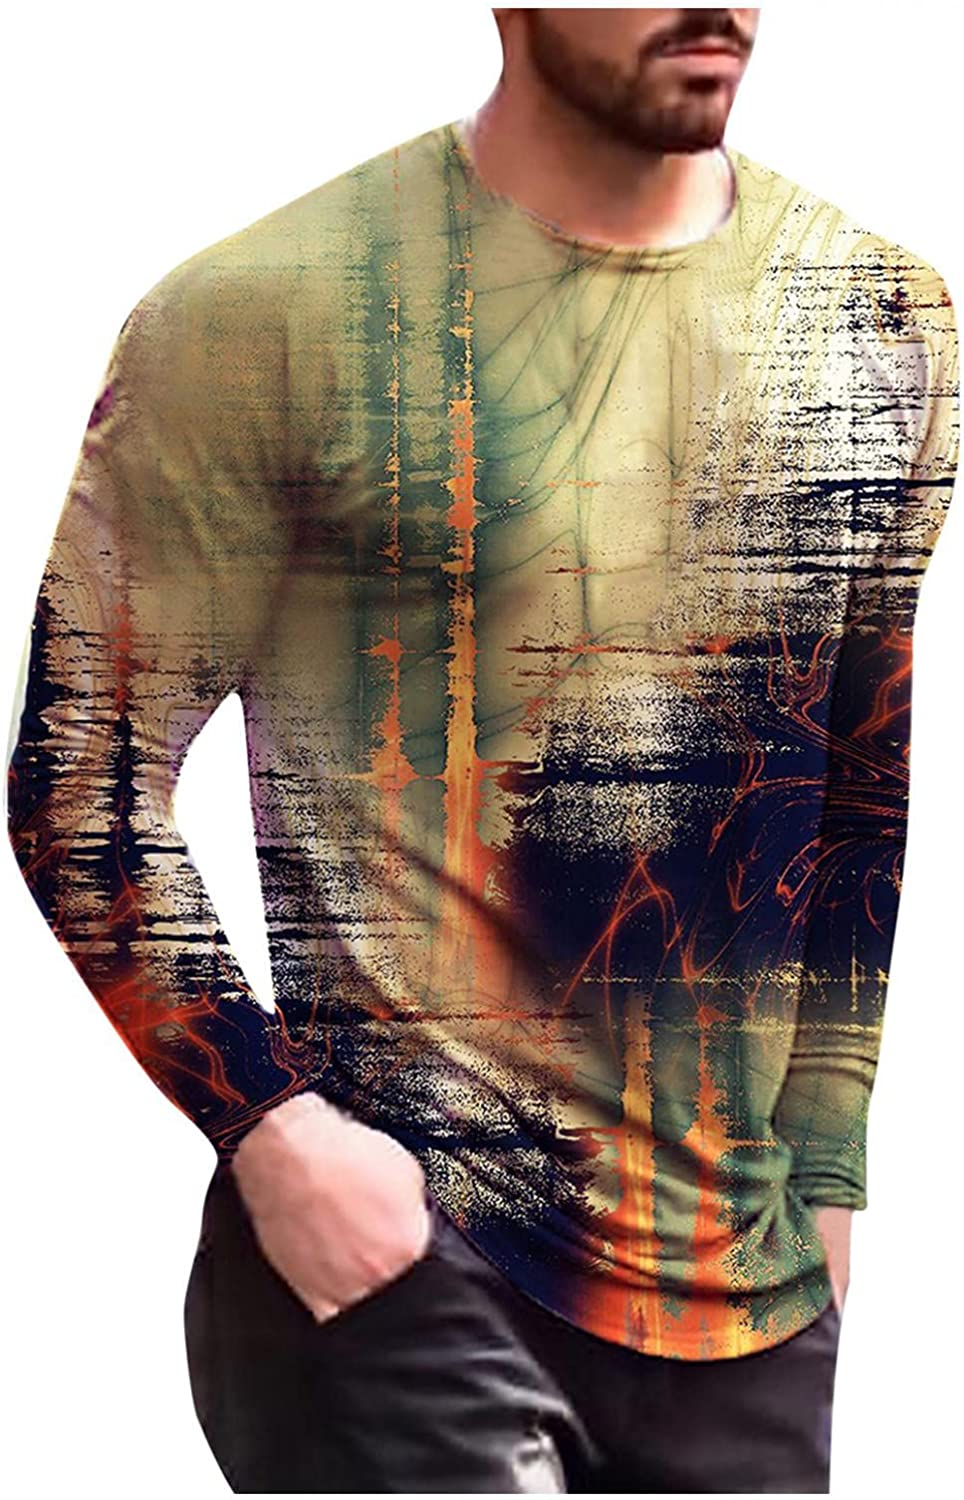 Aayomet T-Shirts for Men Abstract Graphic Long Sleeve Round Neck Sweatshirts Workout Sport Casual Tee Shirts Blouses Tops